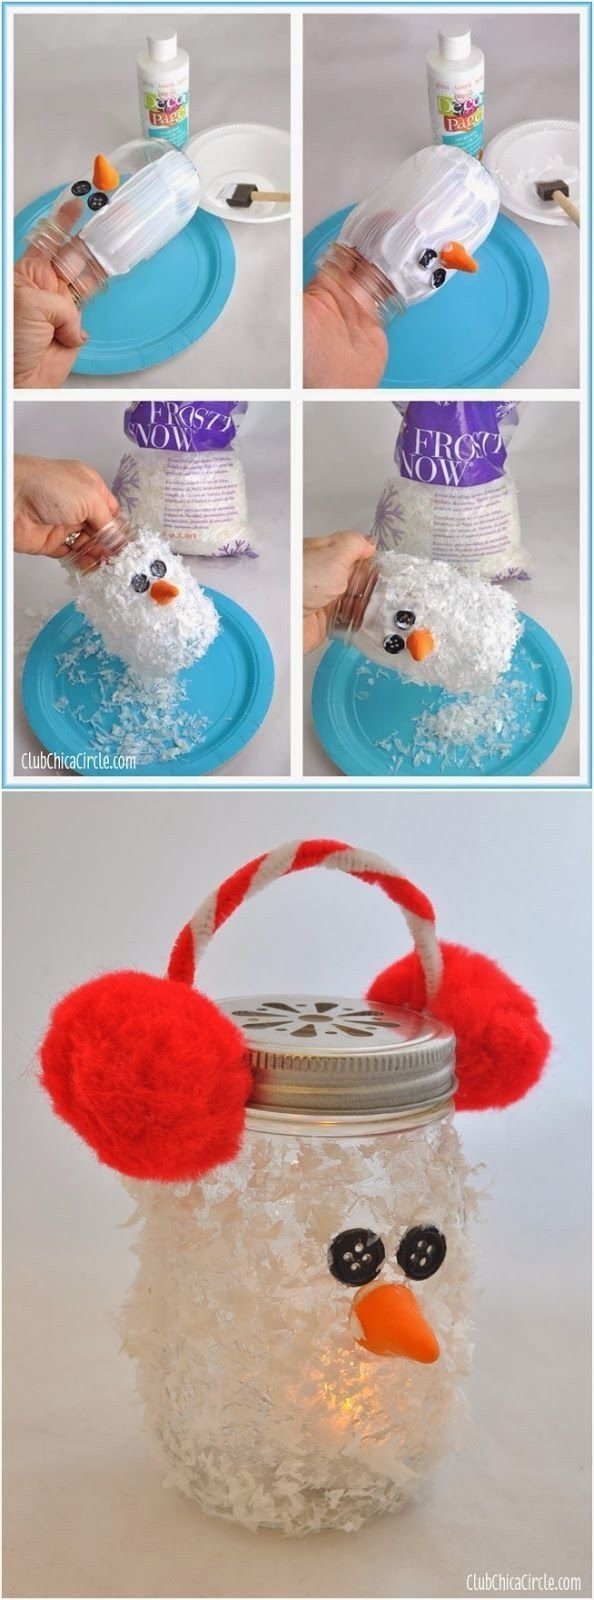 10 Ideal Cute Craft Ideas For Kids 424 best kids crafts images on pinterest crafts for kids 2020